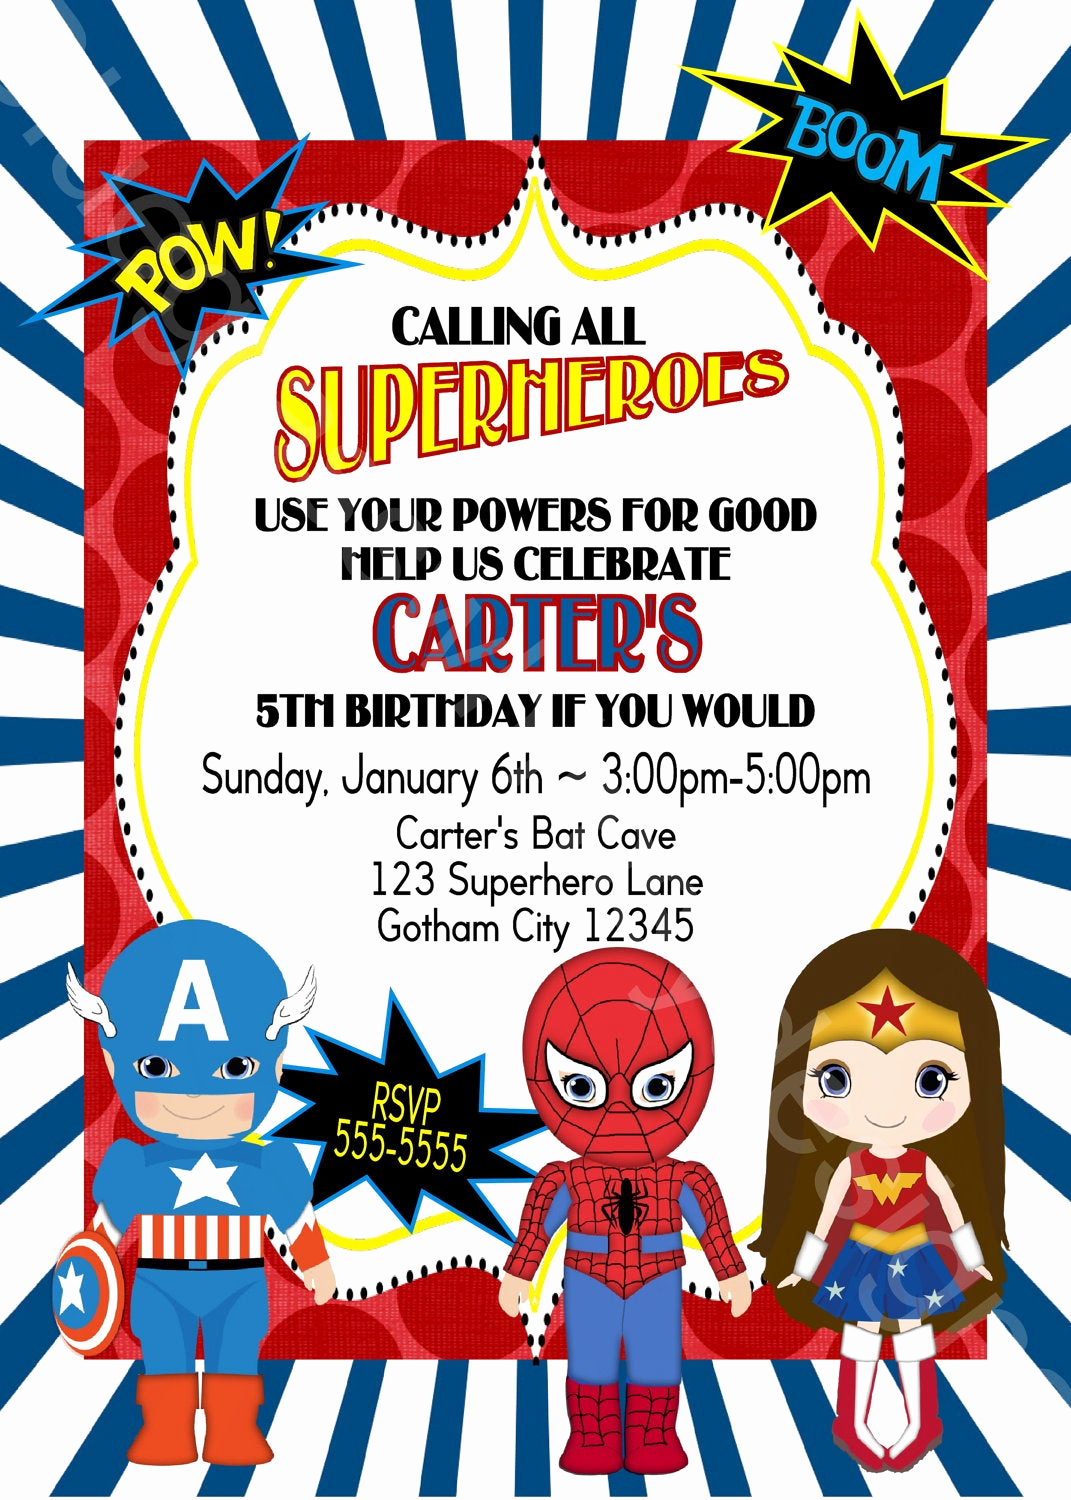 Calling All Superheroes Invitation Lovely Calling All Superheroes Birthday Party Invitation Boy or